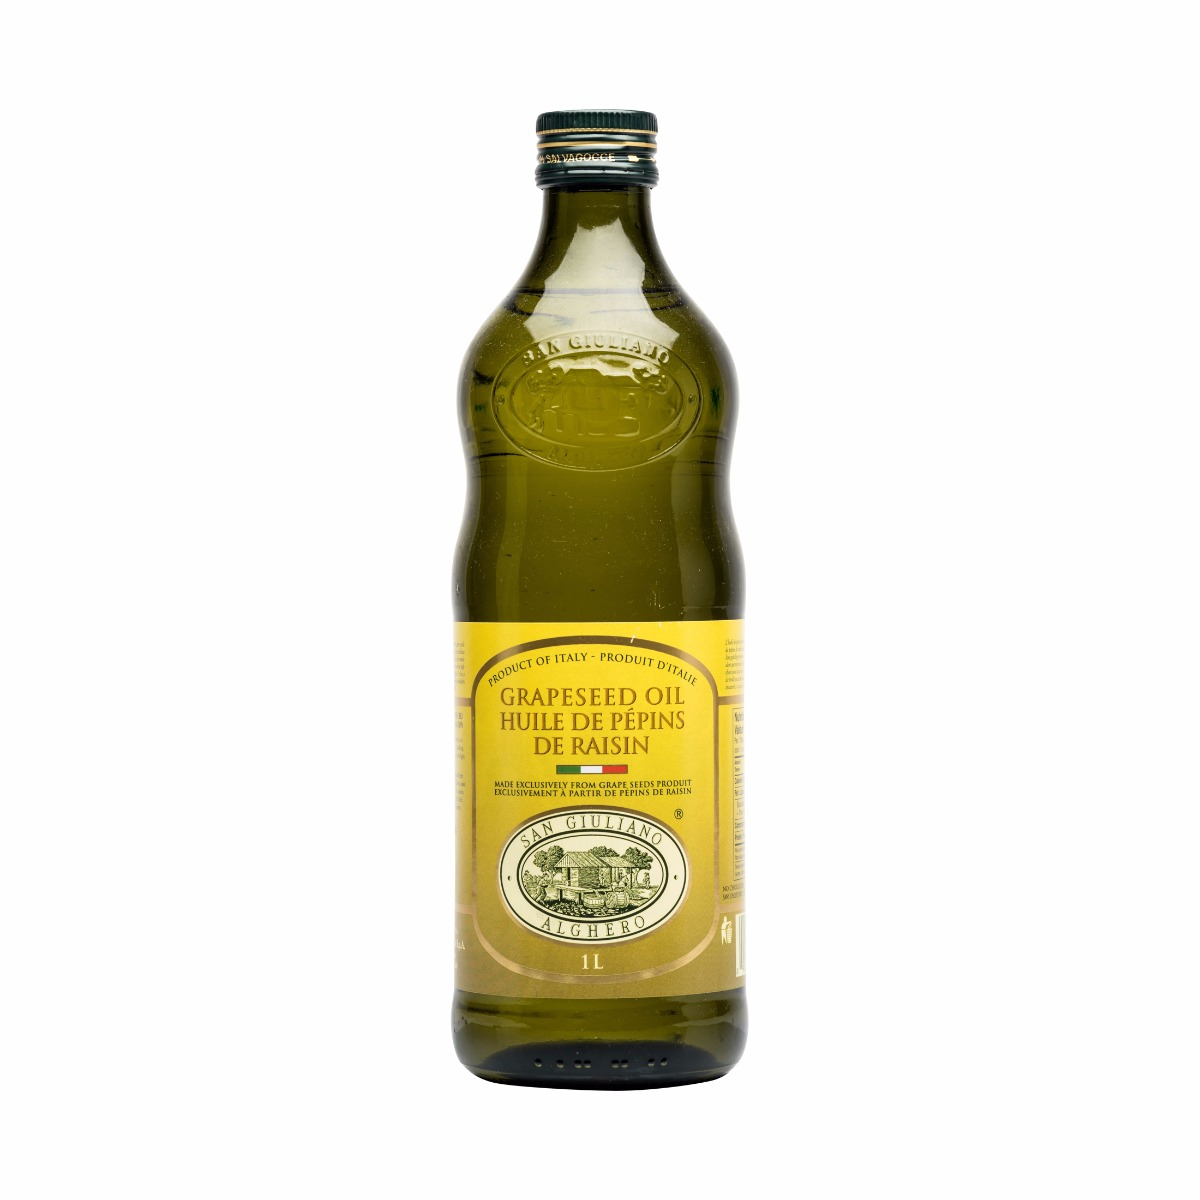 SAN GIULIANO GRAPESEED OIL